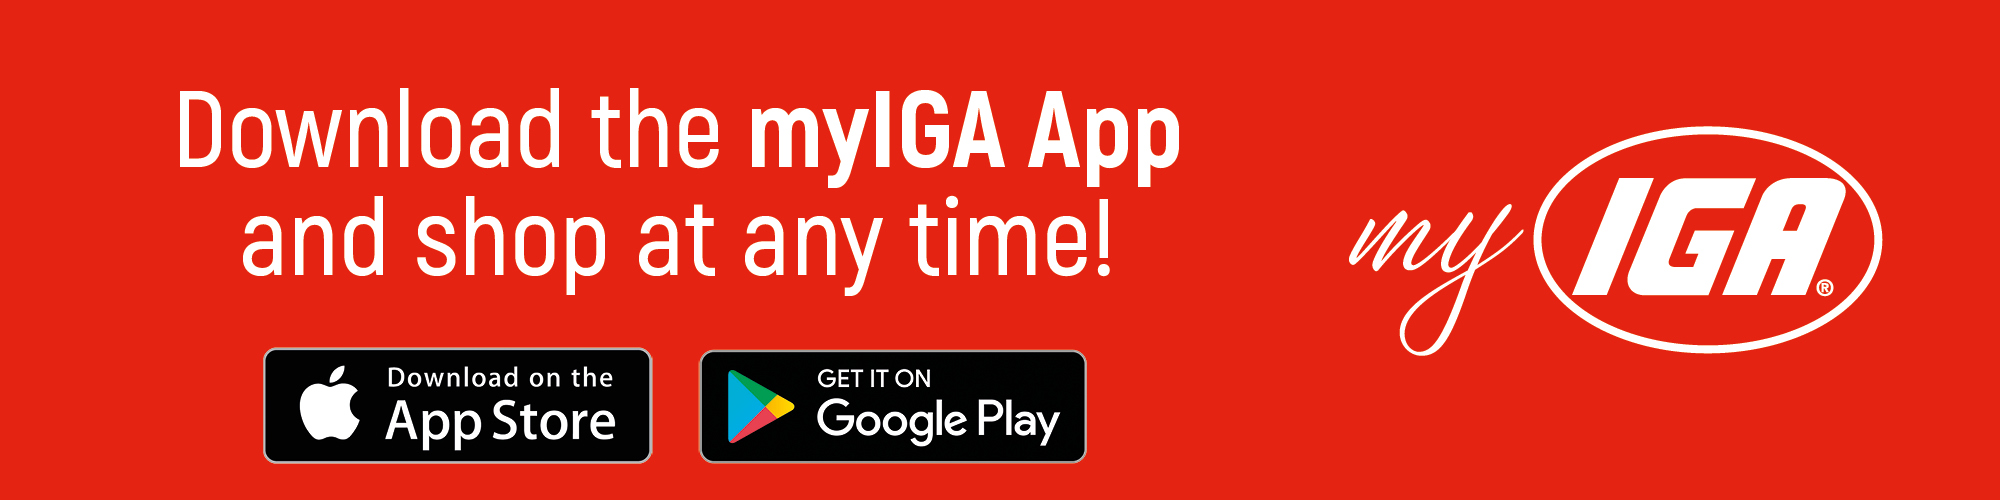 Download the myIGA iOS and Android mobile apps